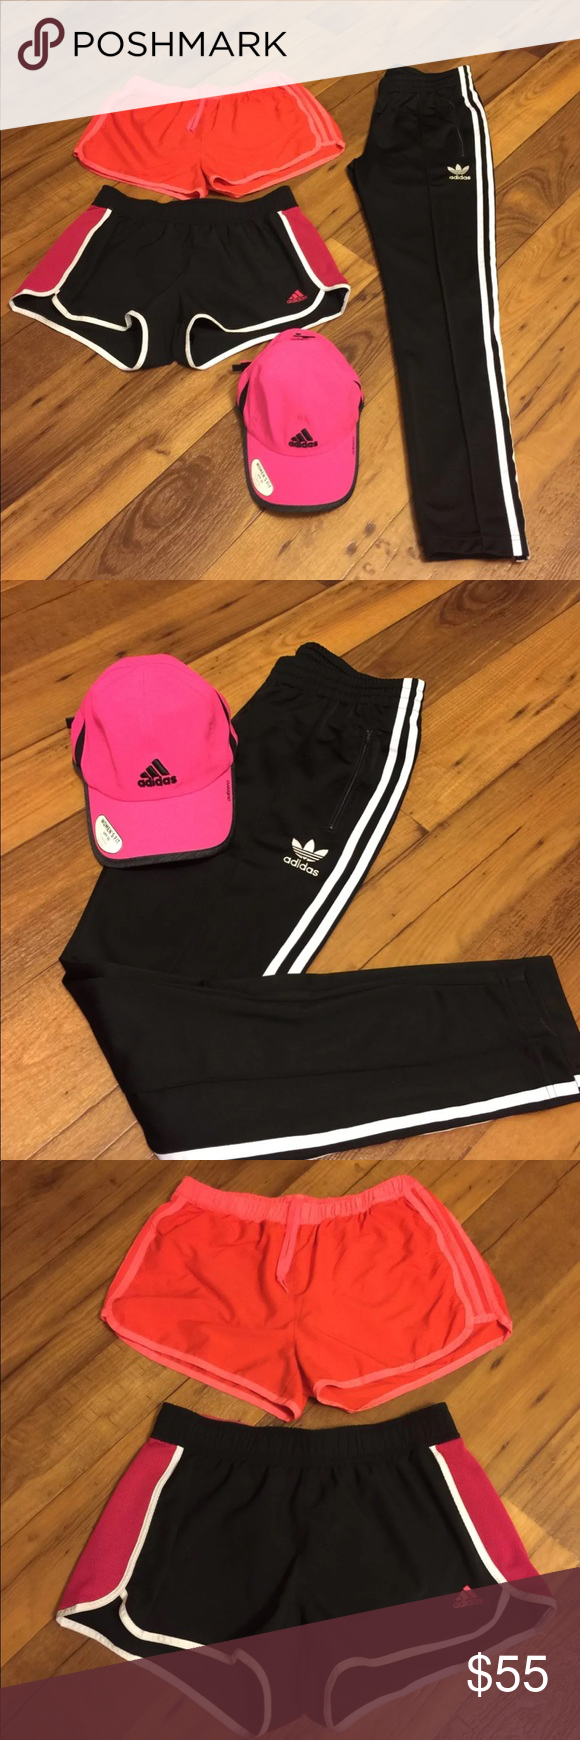 8e275c2f248 Adidas Bundle M Adidas Women s sz medium clothing bundle 2 pair running  shorts 1 fitted hat